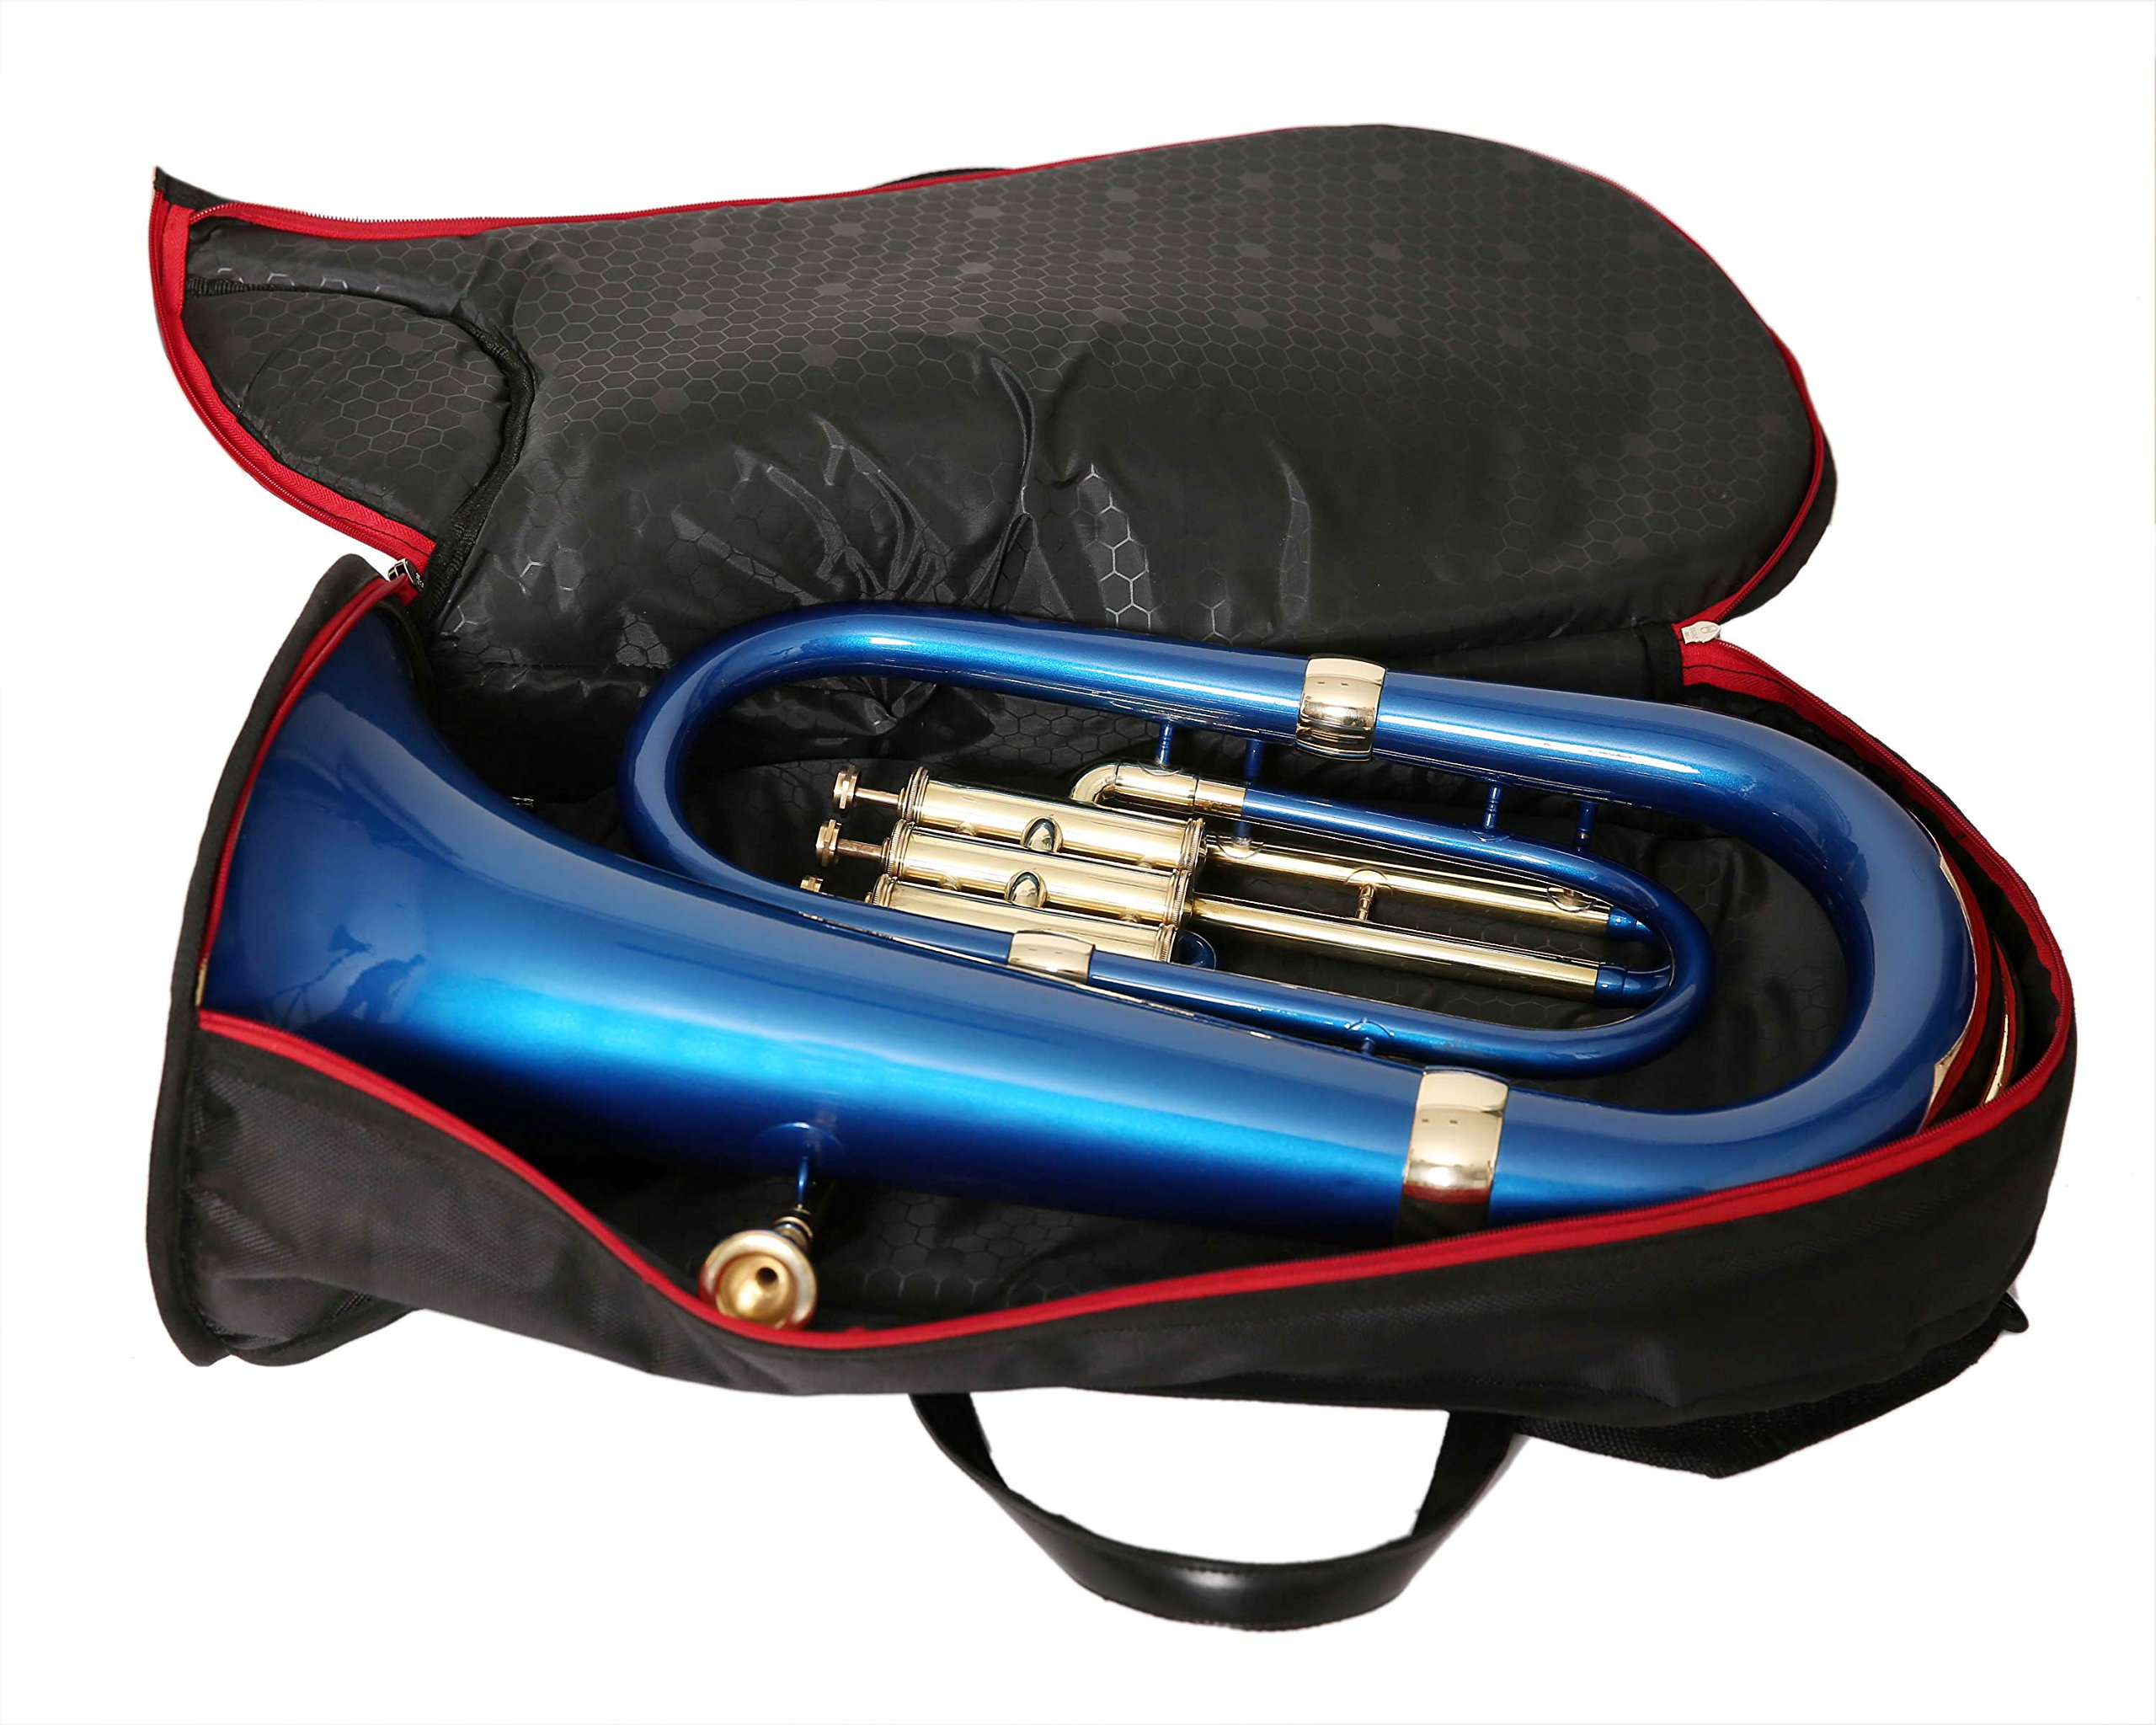 MOONFLAG Euphonium Black lacquered and Brass polished Bb 3 valve with hard case by NASIR ALI (Image #5)